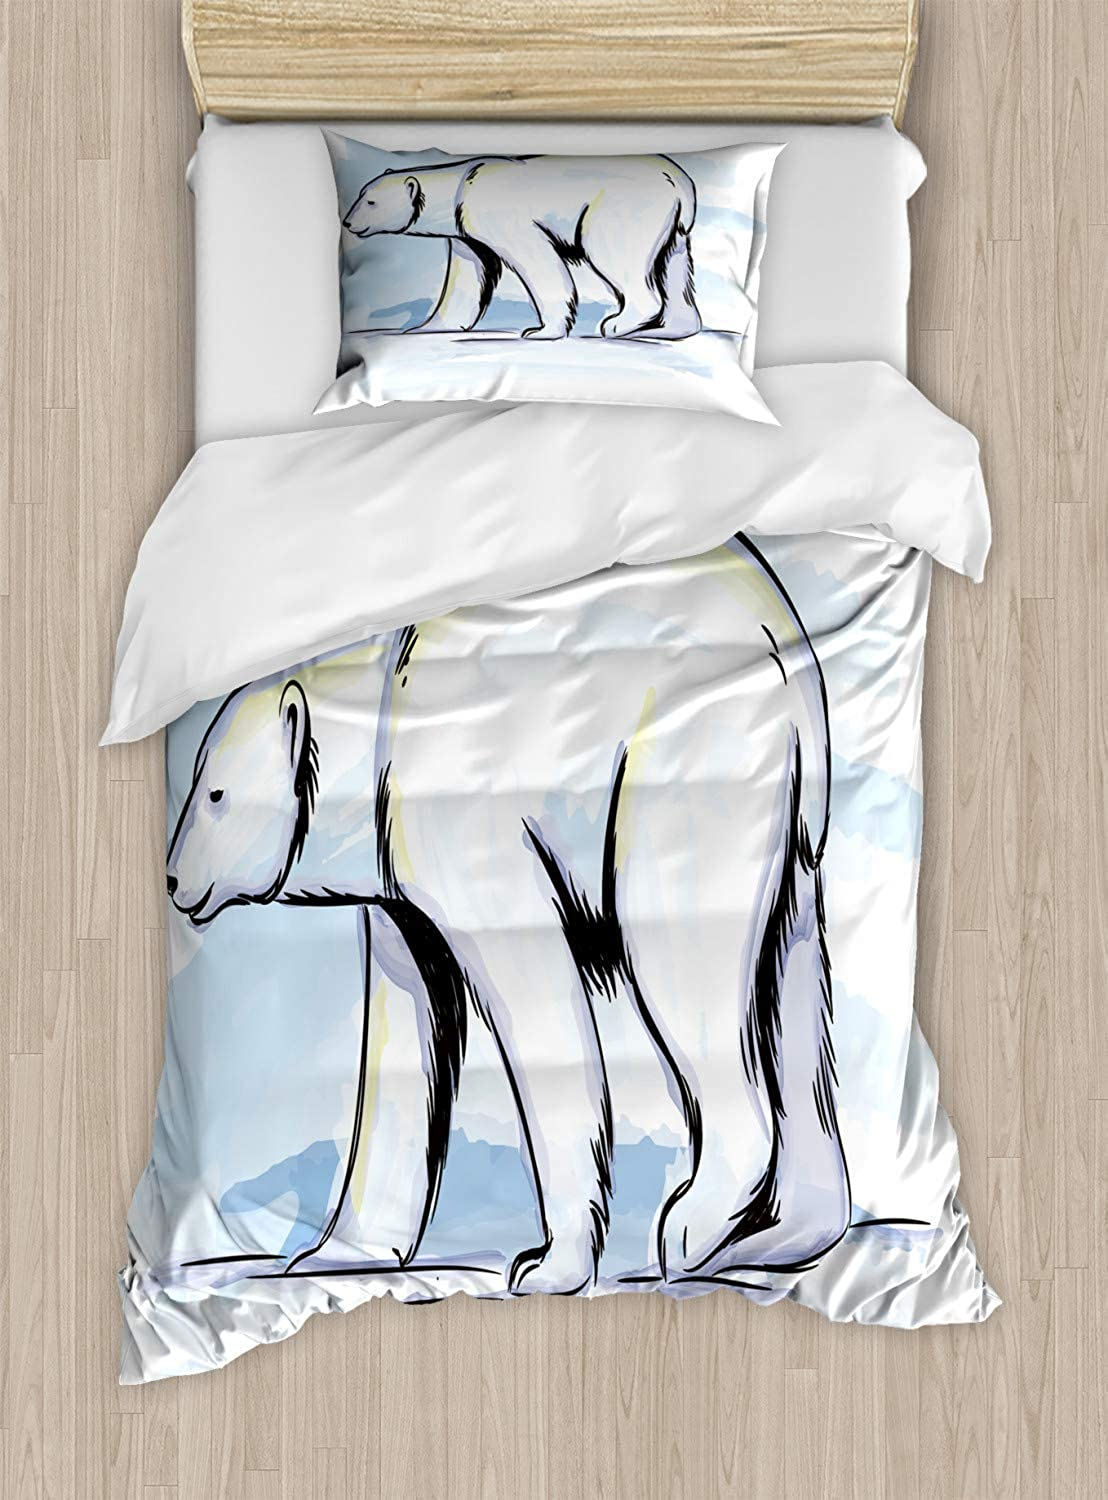 VpinkLVHOME North Pole Duvet Cover Set Twin Size,Hand Drawn Pencil Sketch of Bear Side Shot,Kids Bedding  Double Brushed Microfiber,Baby bluee Pale Yellow Purplebluee Charcoal Grey